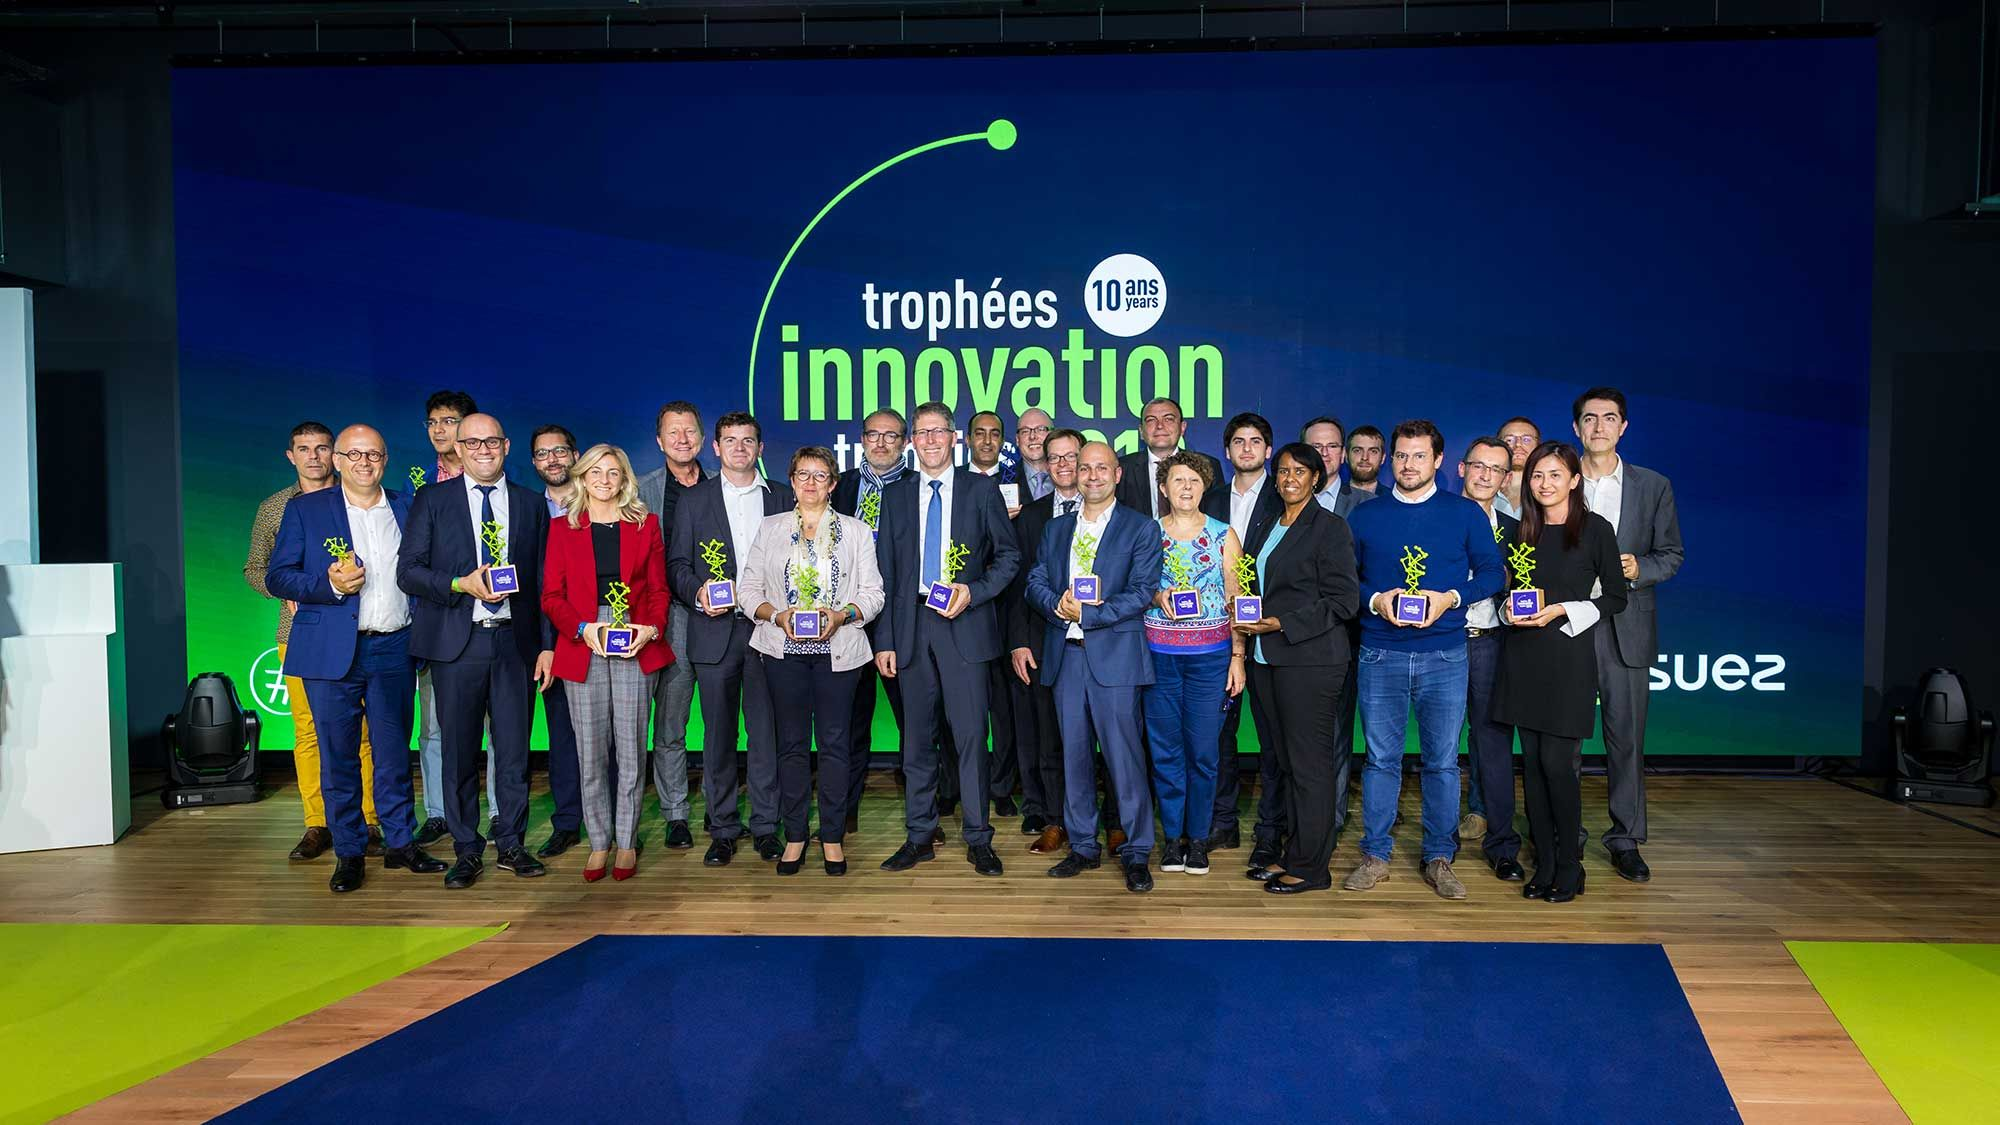 SUEZ Trophees de l'innovation 2018